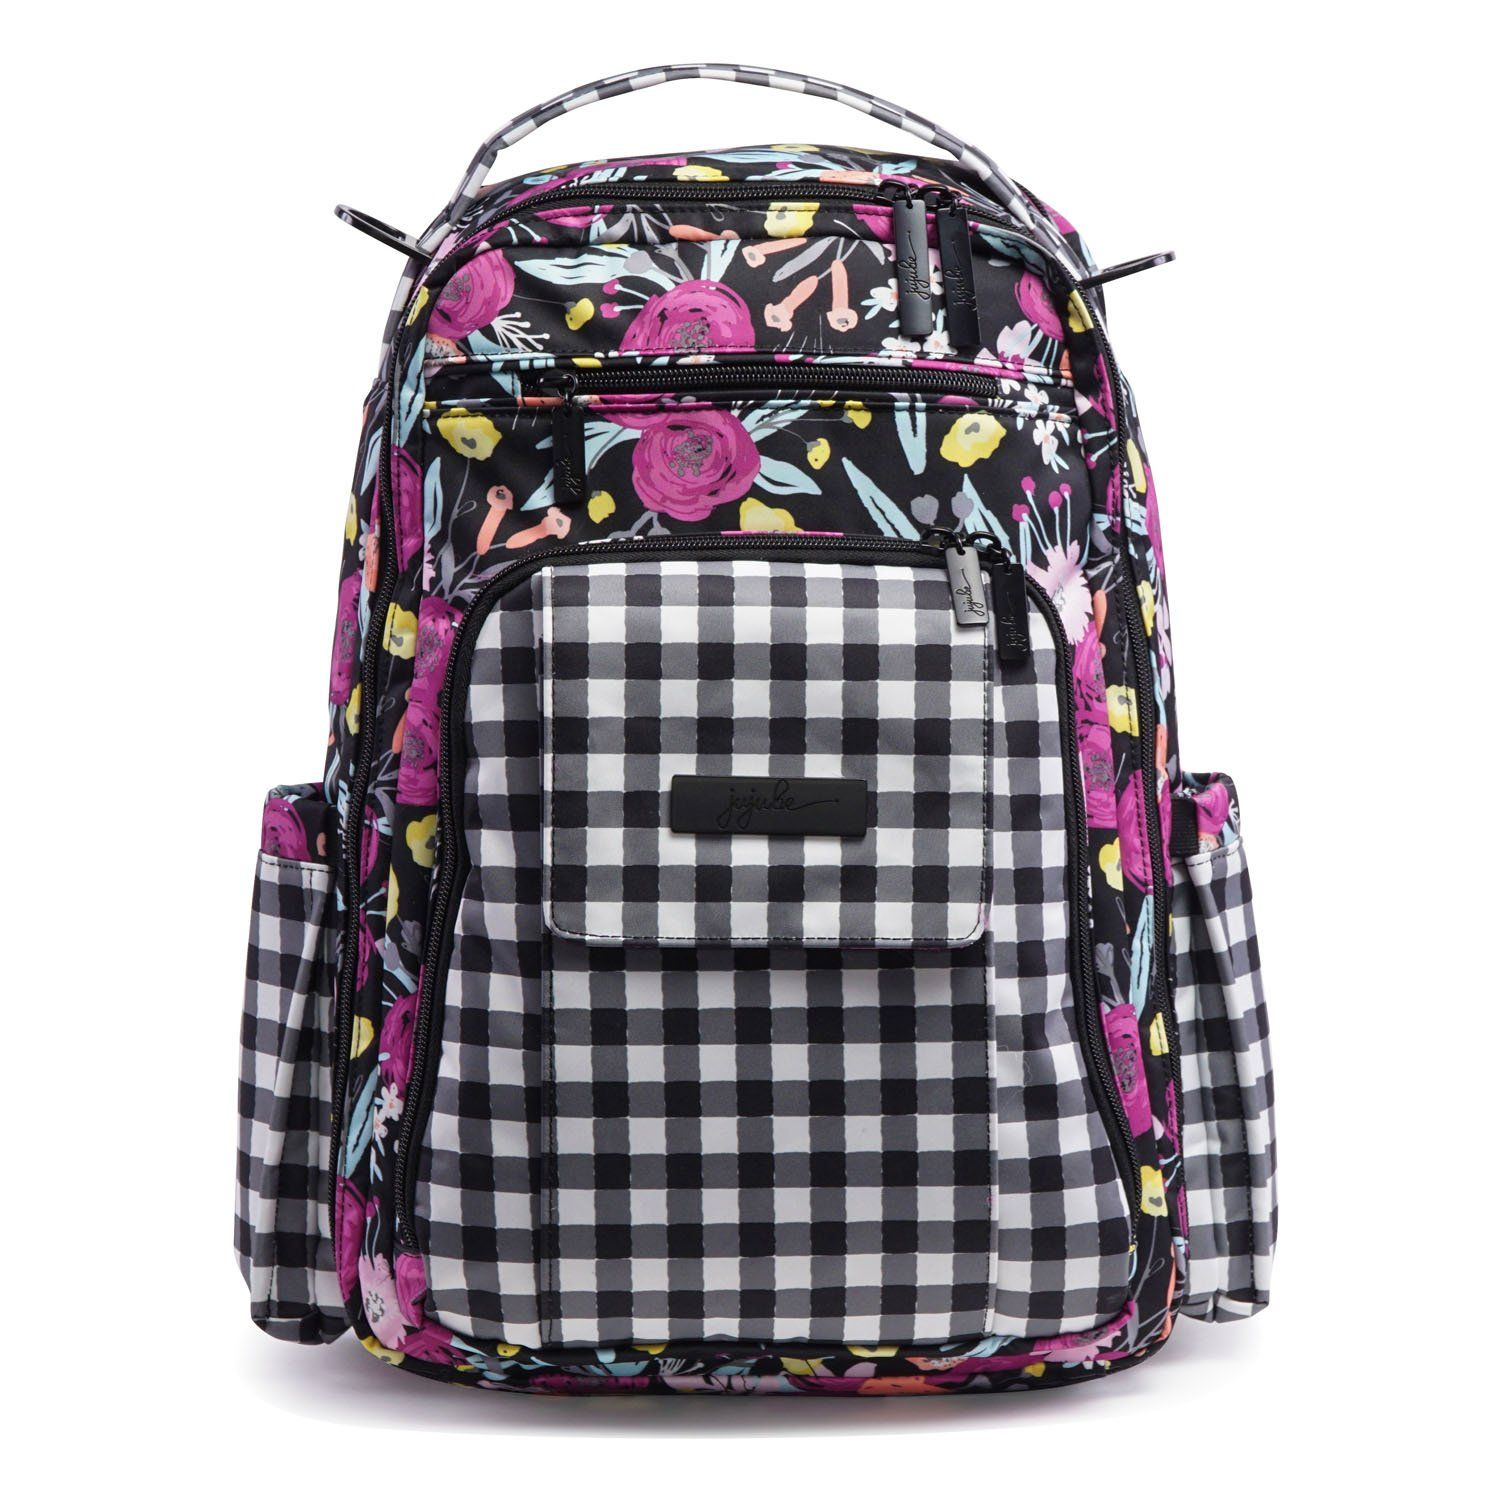 7a693f8ec43e Ju-Ju-Be Onyx Collection - Gingham Bloom - Be Right Back